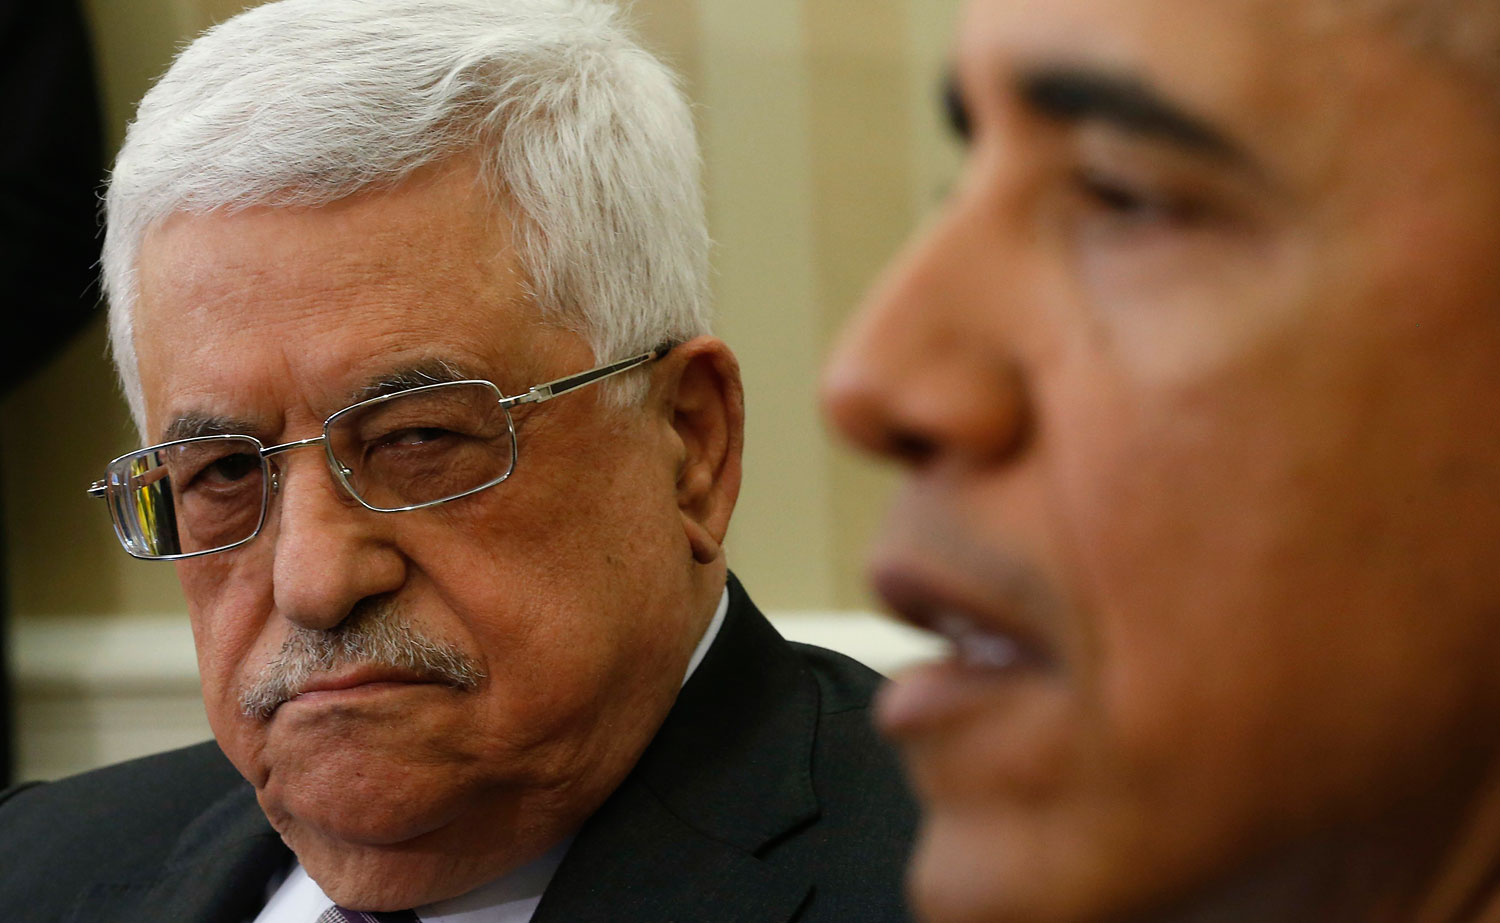 Palestinian Authority President Mahmoud Abbas meeting President Obama at the White House, March 17, 2014.